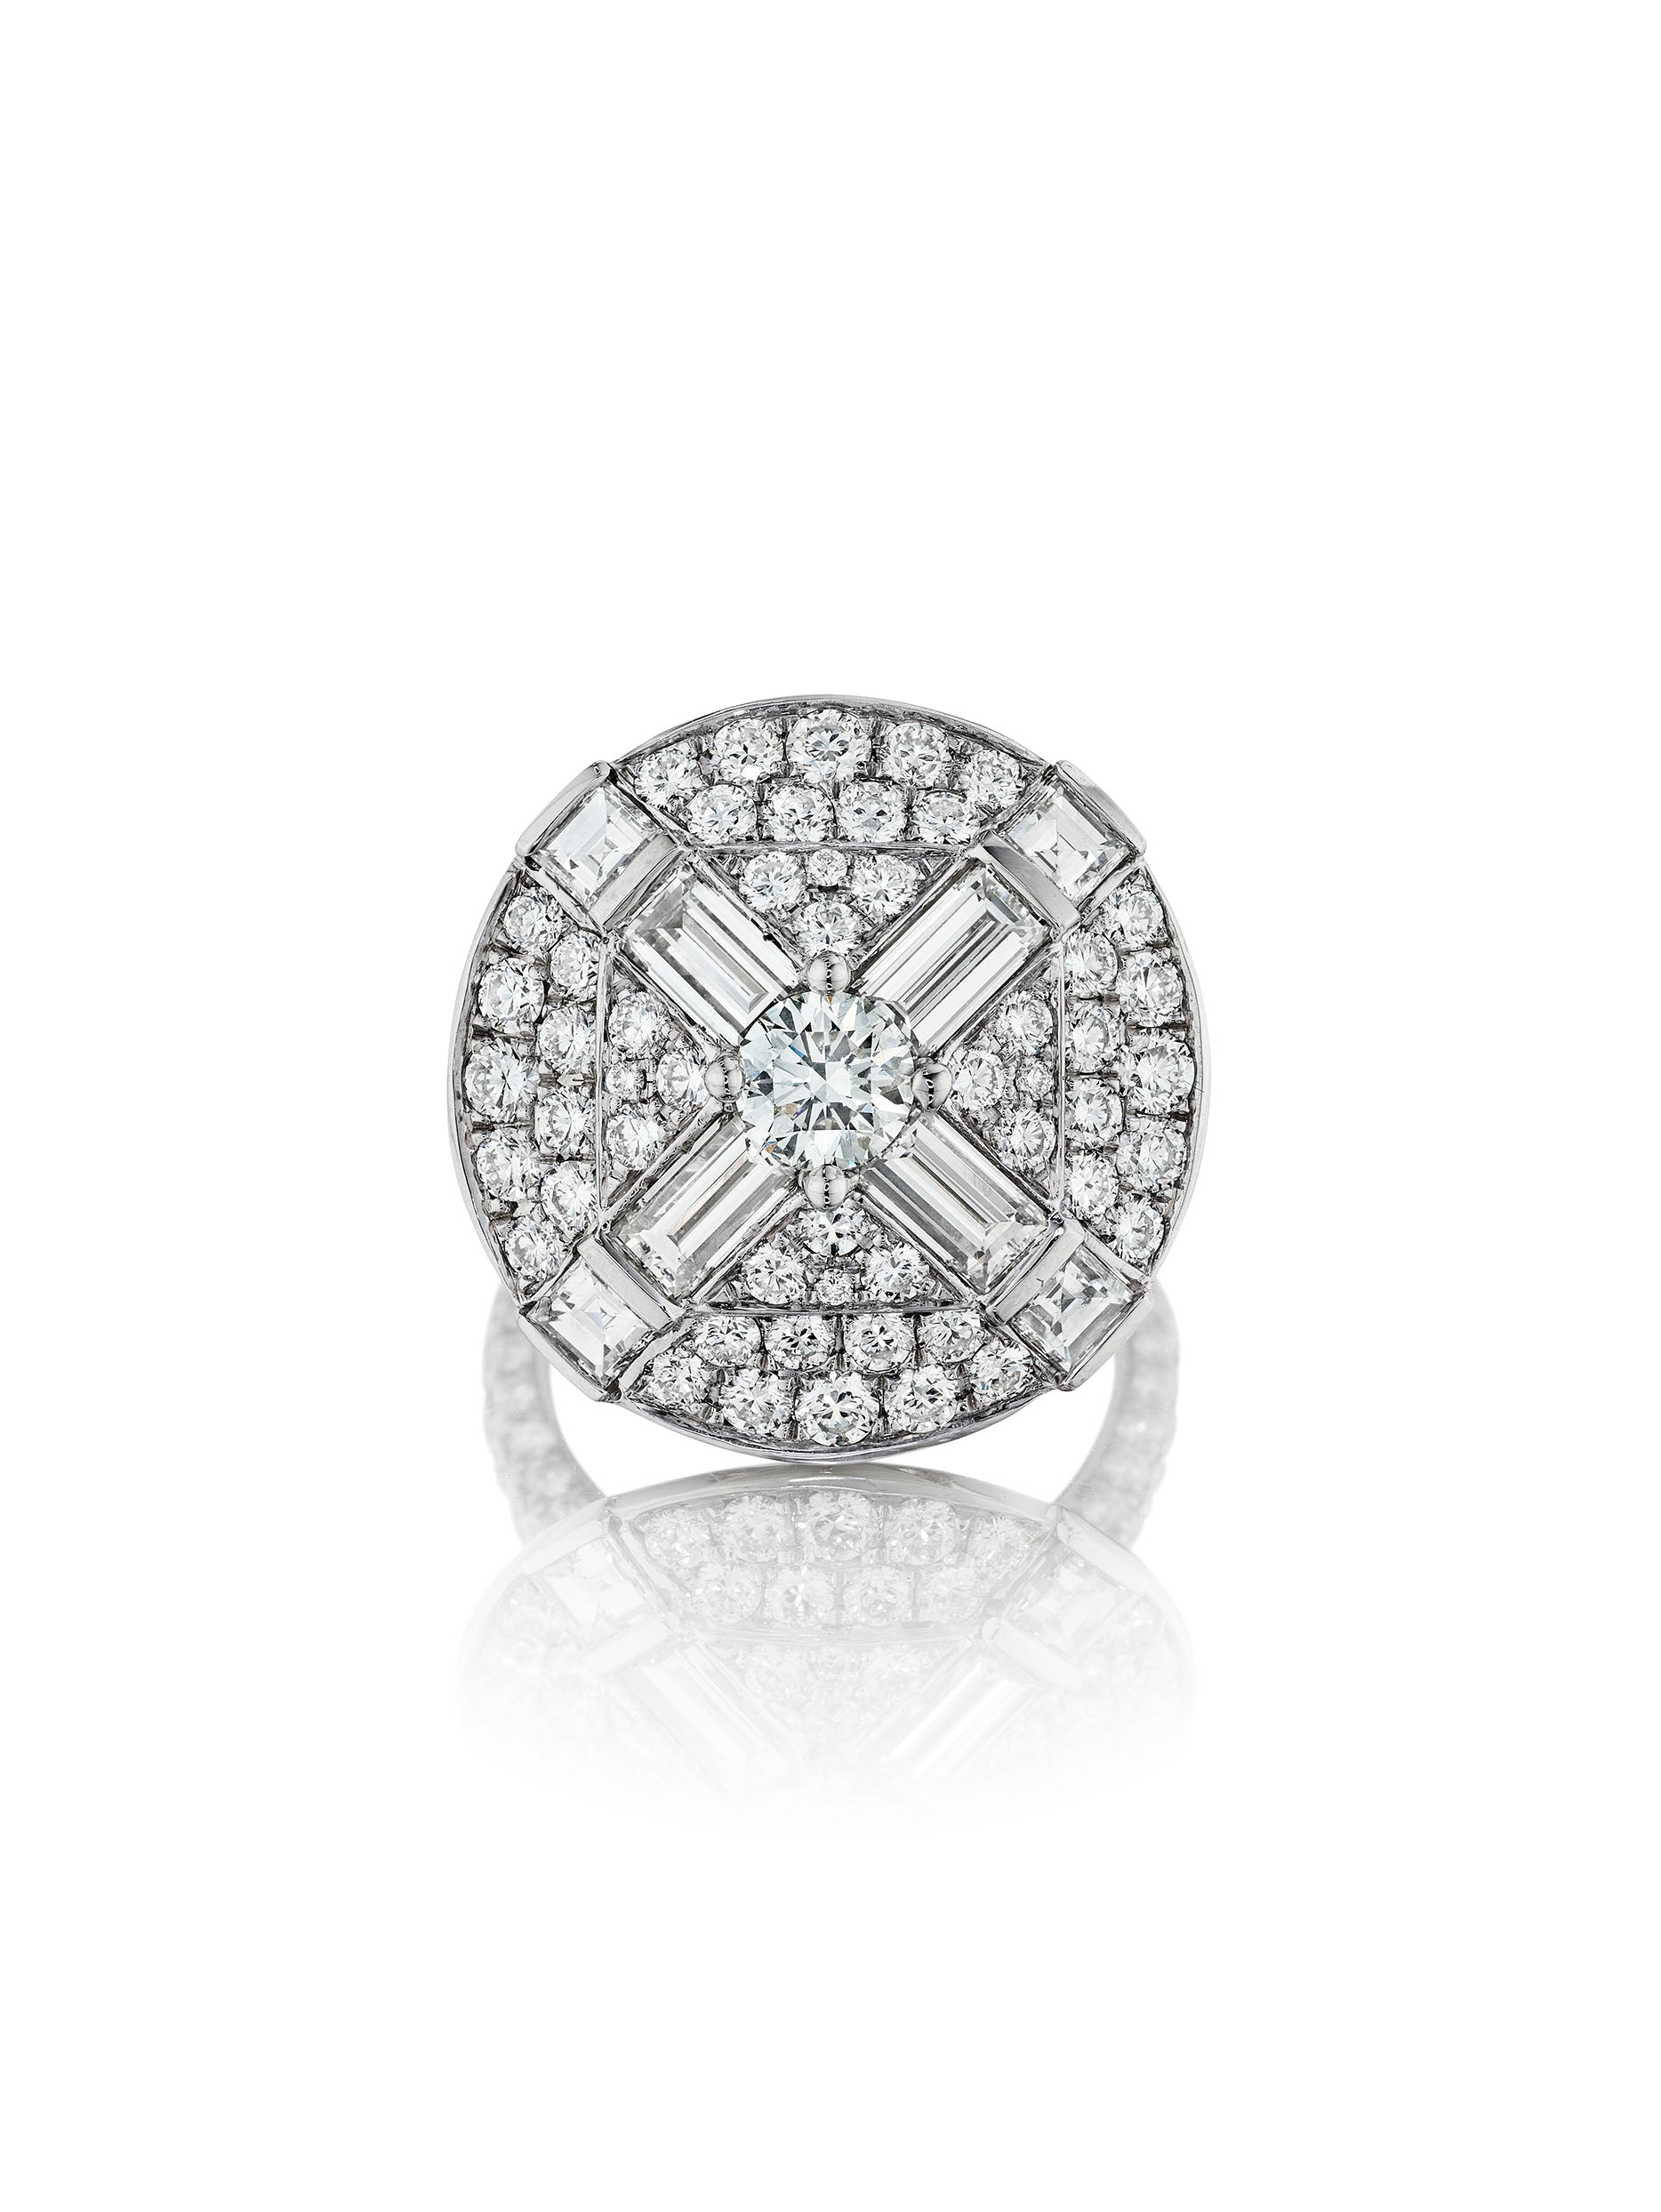 Maria Canale Deco Medallion Diamond Ring